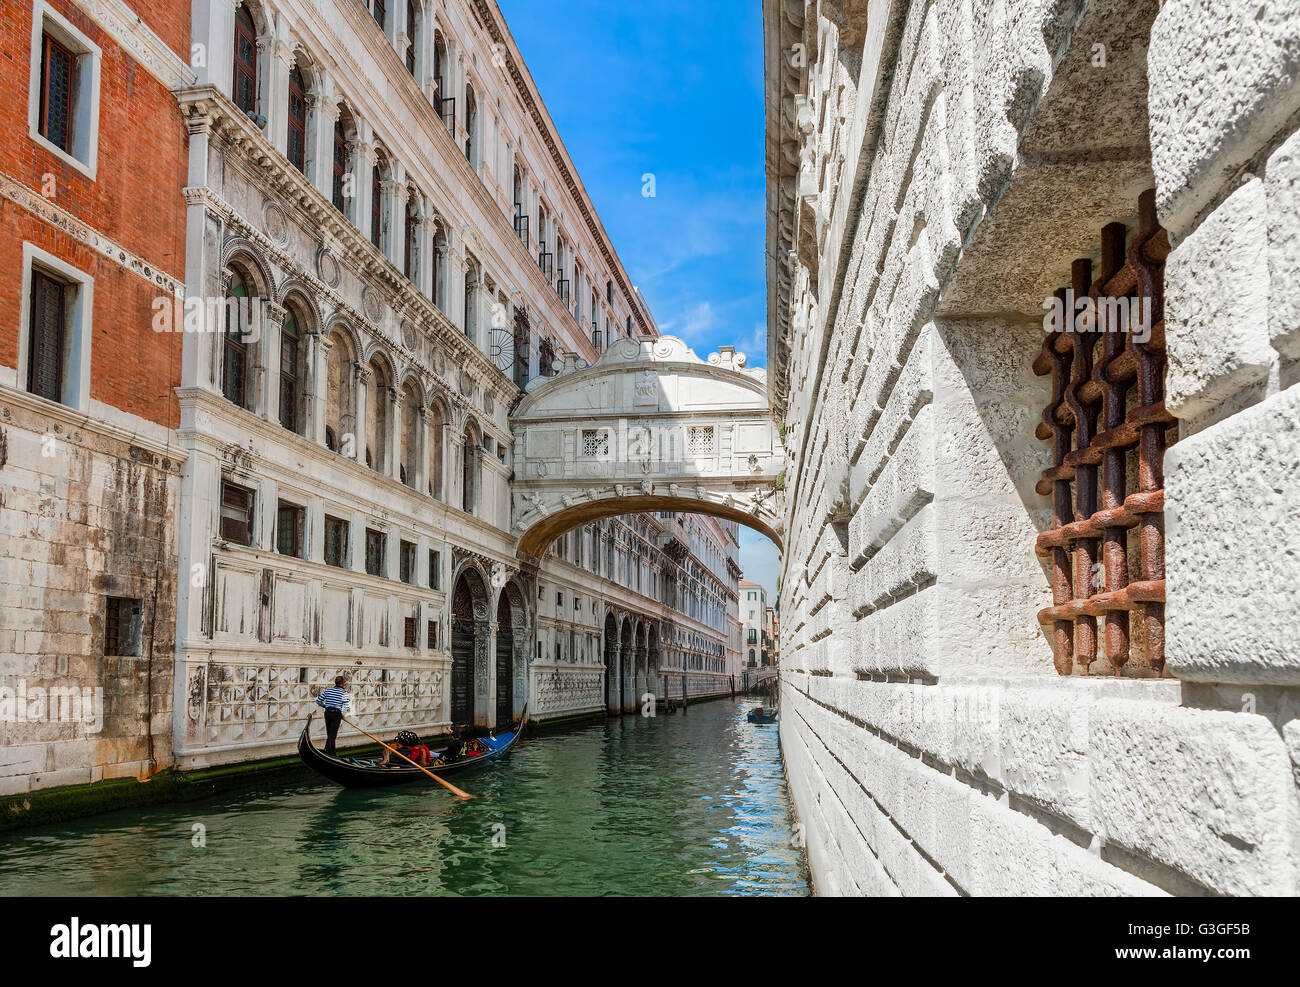 Gondola passing on narrow canal under famous Bridge of Sighs in Venice, Italy. - Stock Image